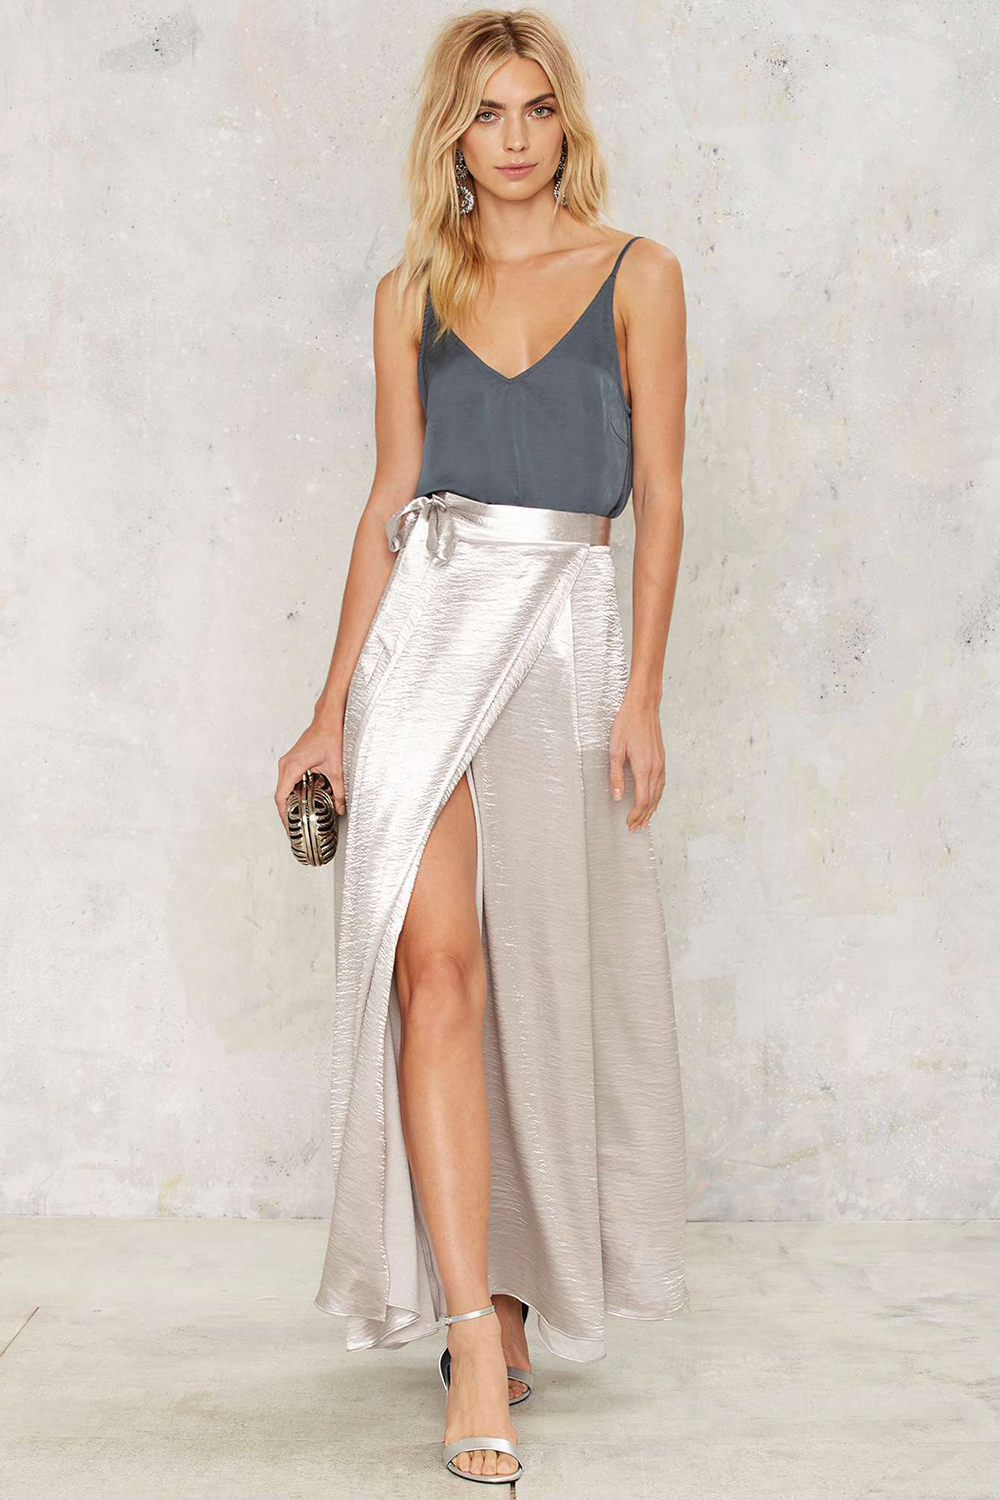 Nasty Gal Breakthrough Satin Slit Skirt - Unwrap These 10 Holiday Dresses